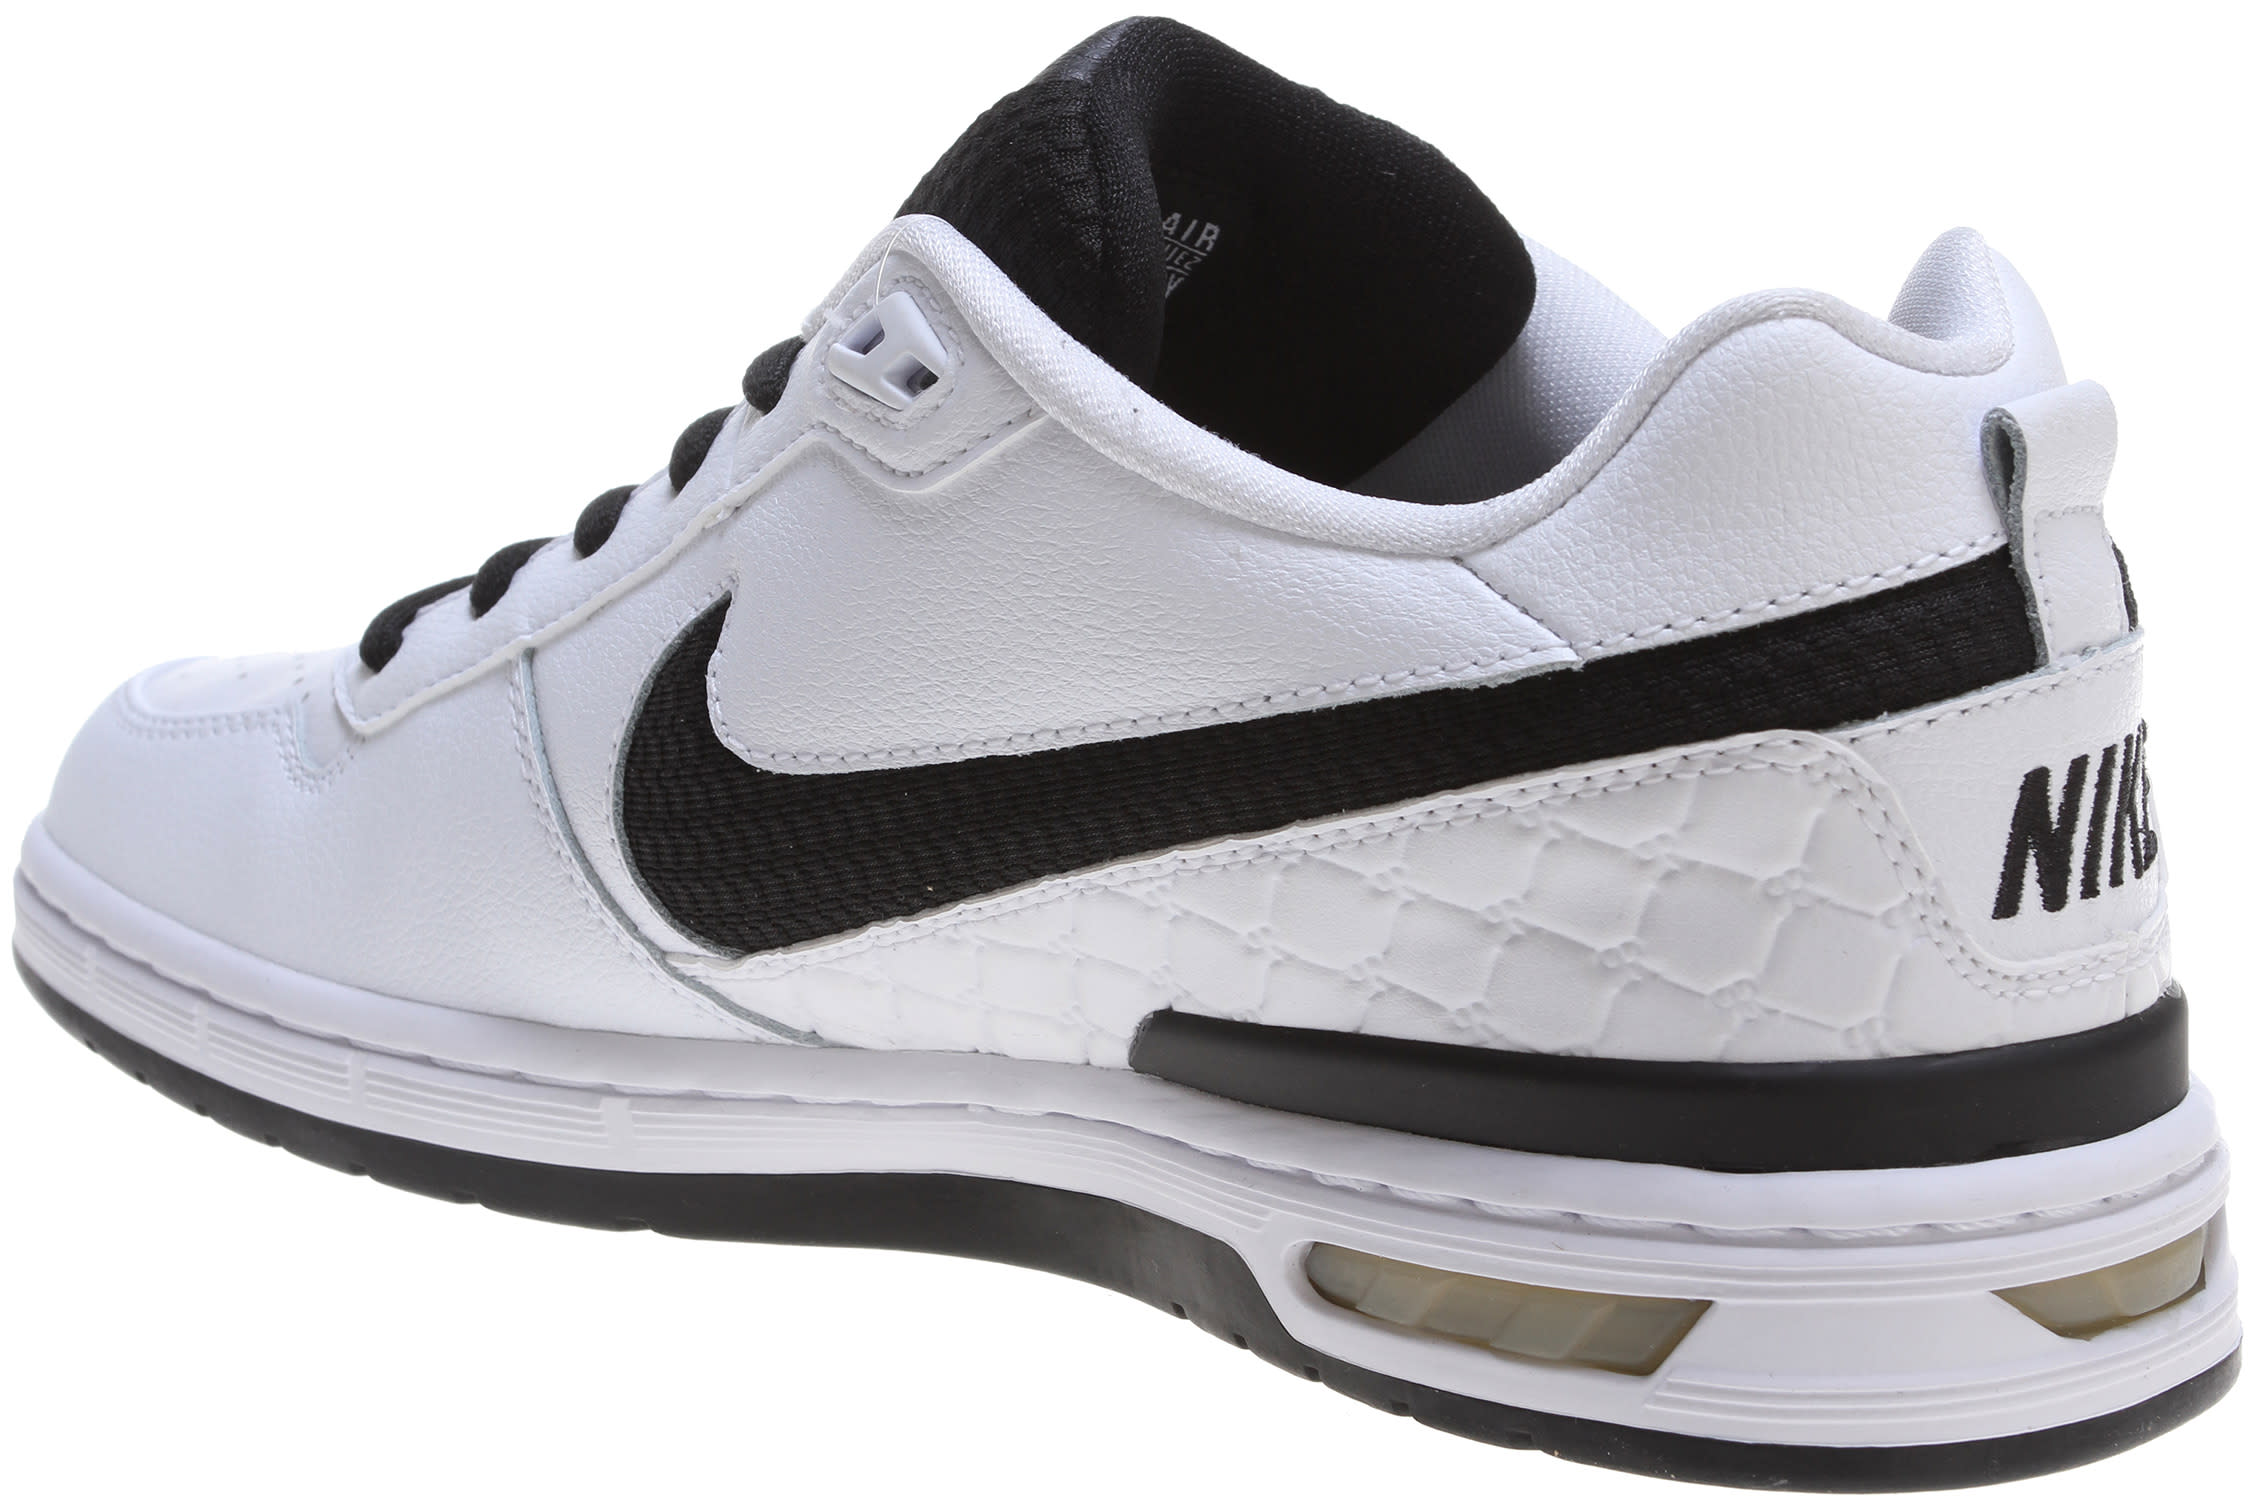 6f63f63d0026 Nike Paul Rodriguez Zoom Air Low Skate Shoes - thumbnail 3